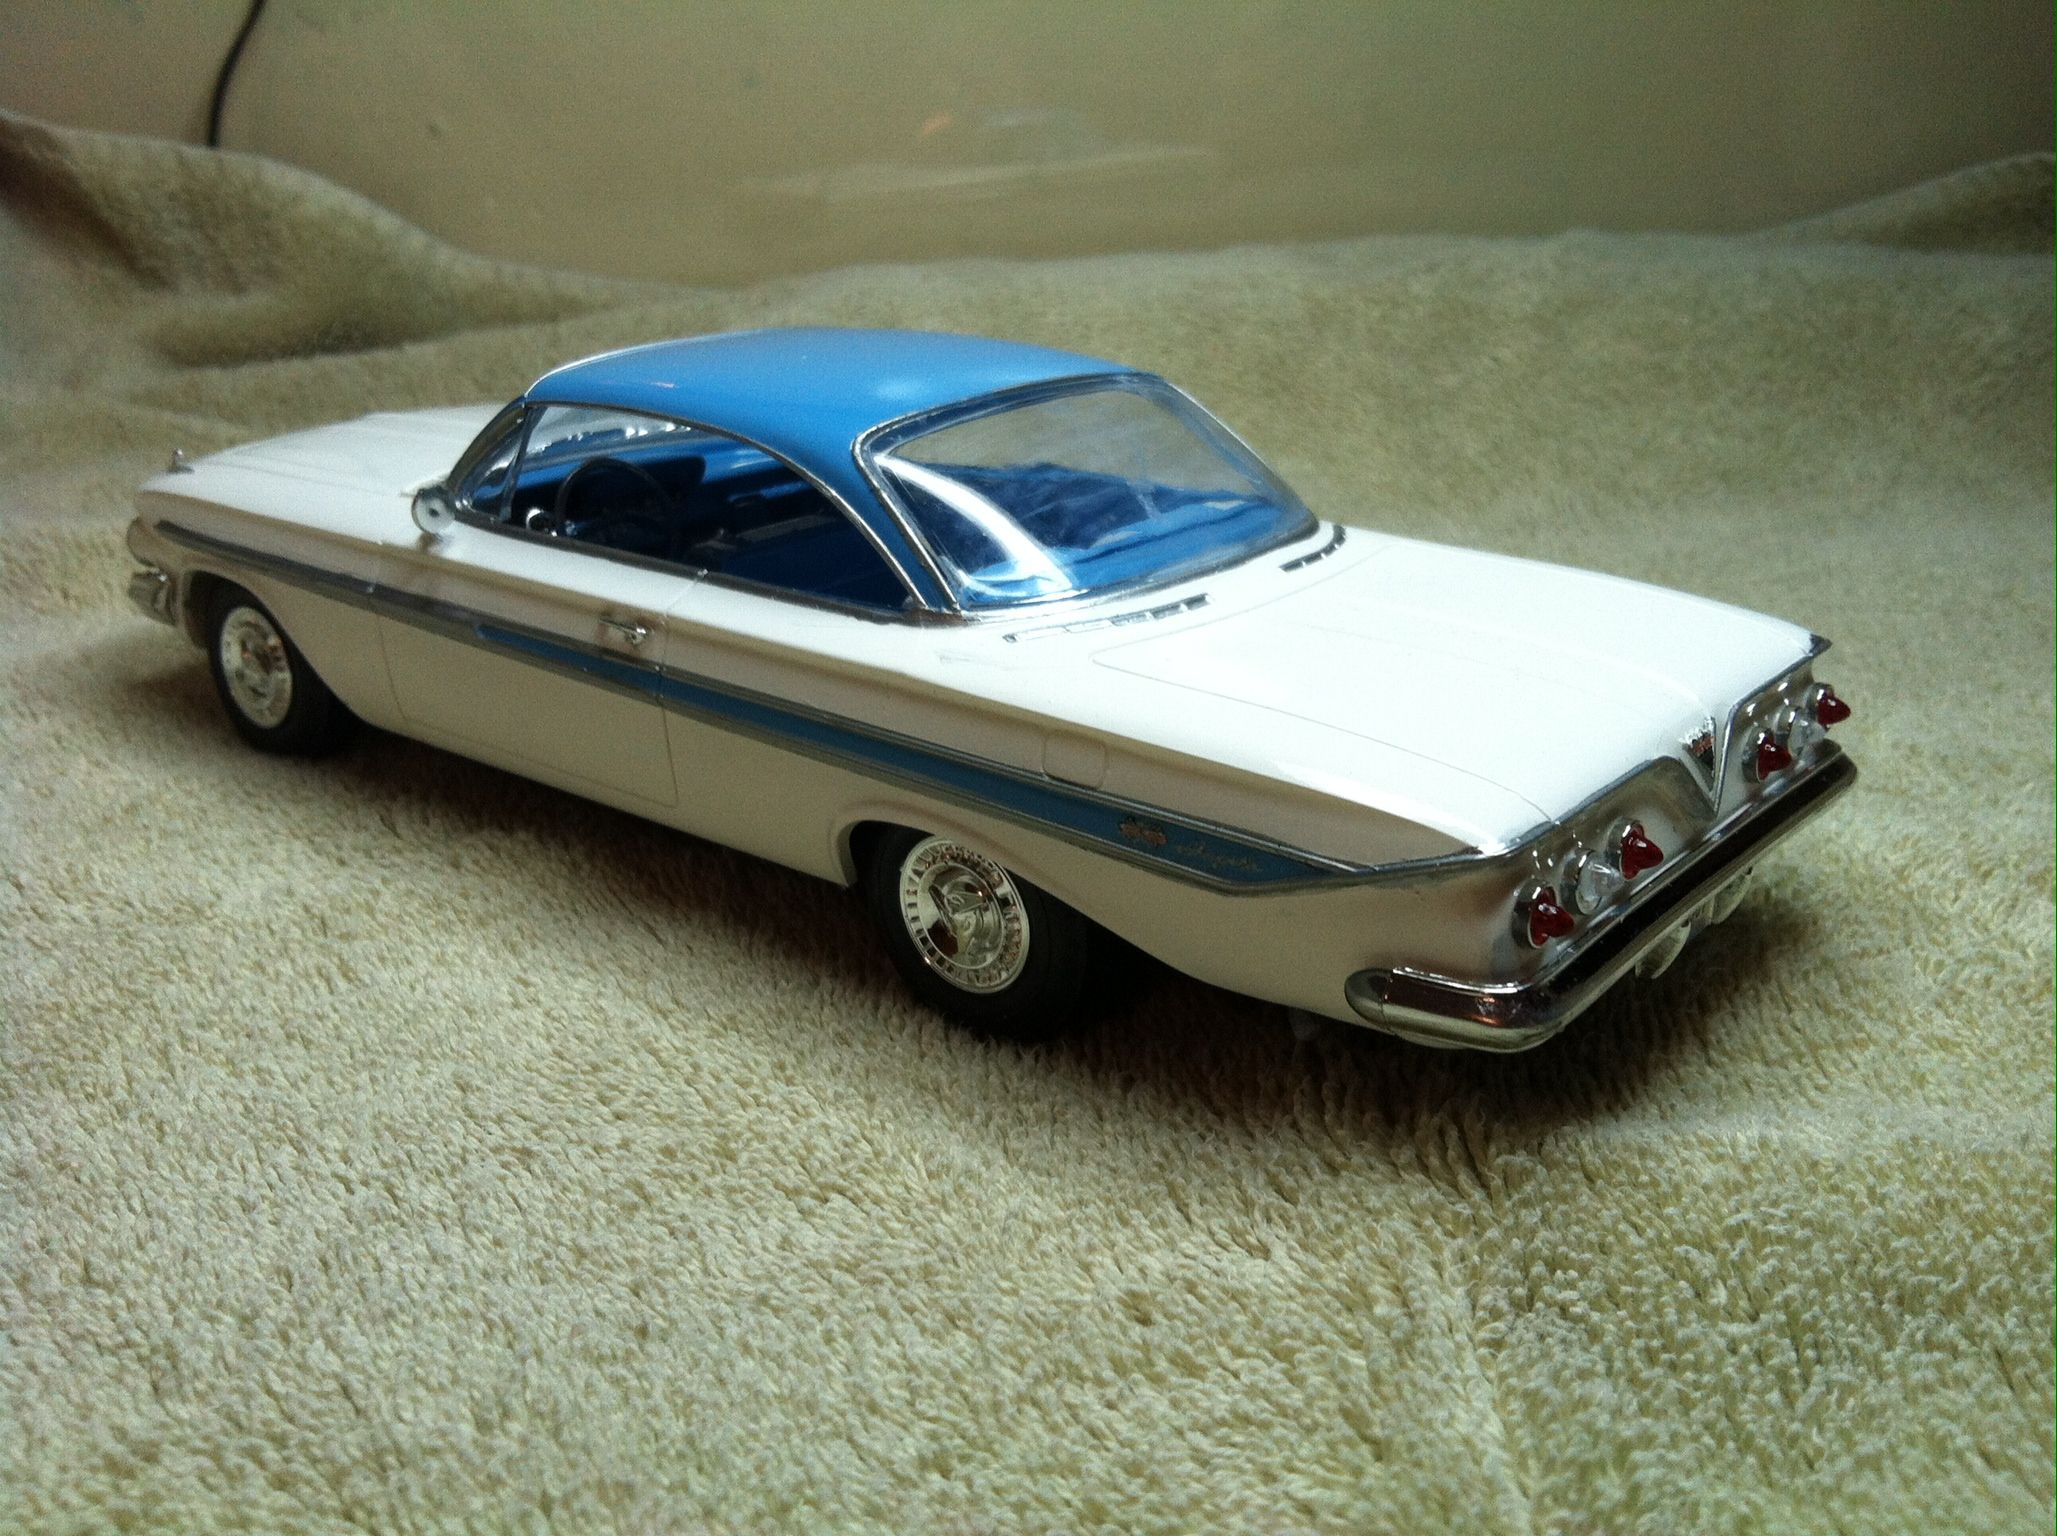 1961 chevy impala diecast cars pinterest model car. Black Bedroom Furniture Sets. Home Design Ideas